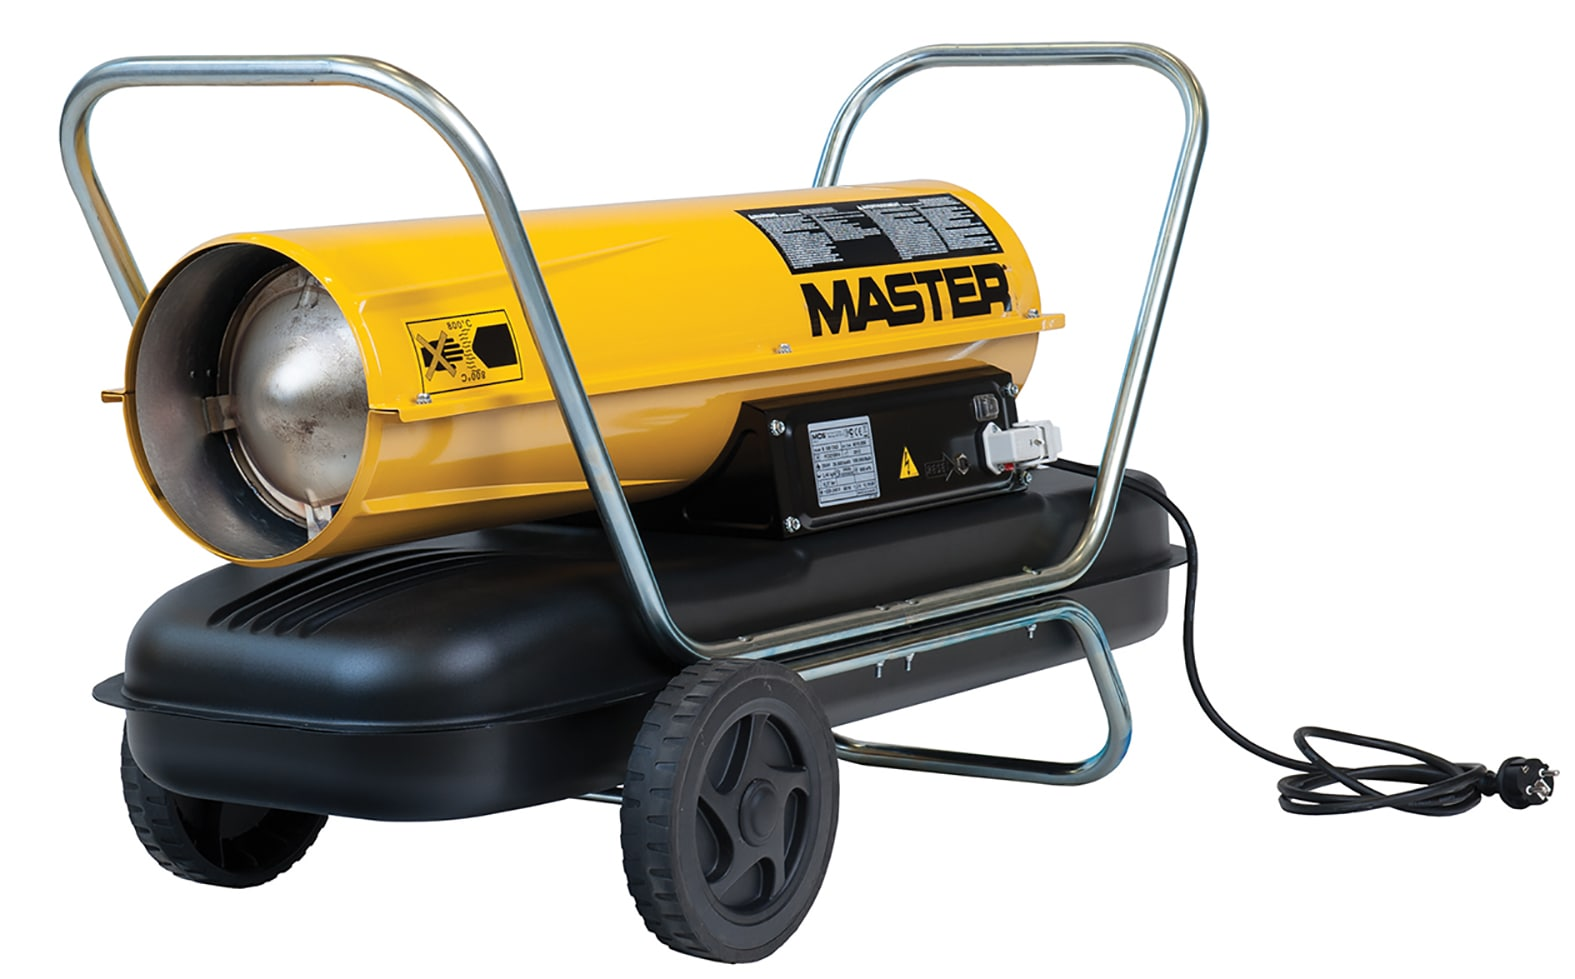 Master B150 44kW Direct Diesel Heater 110v 28Kg